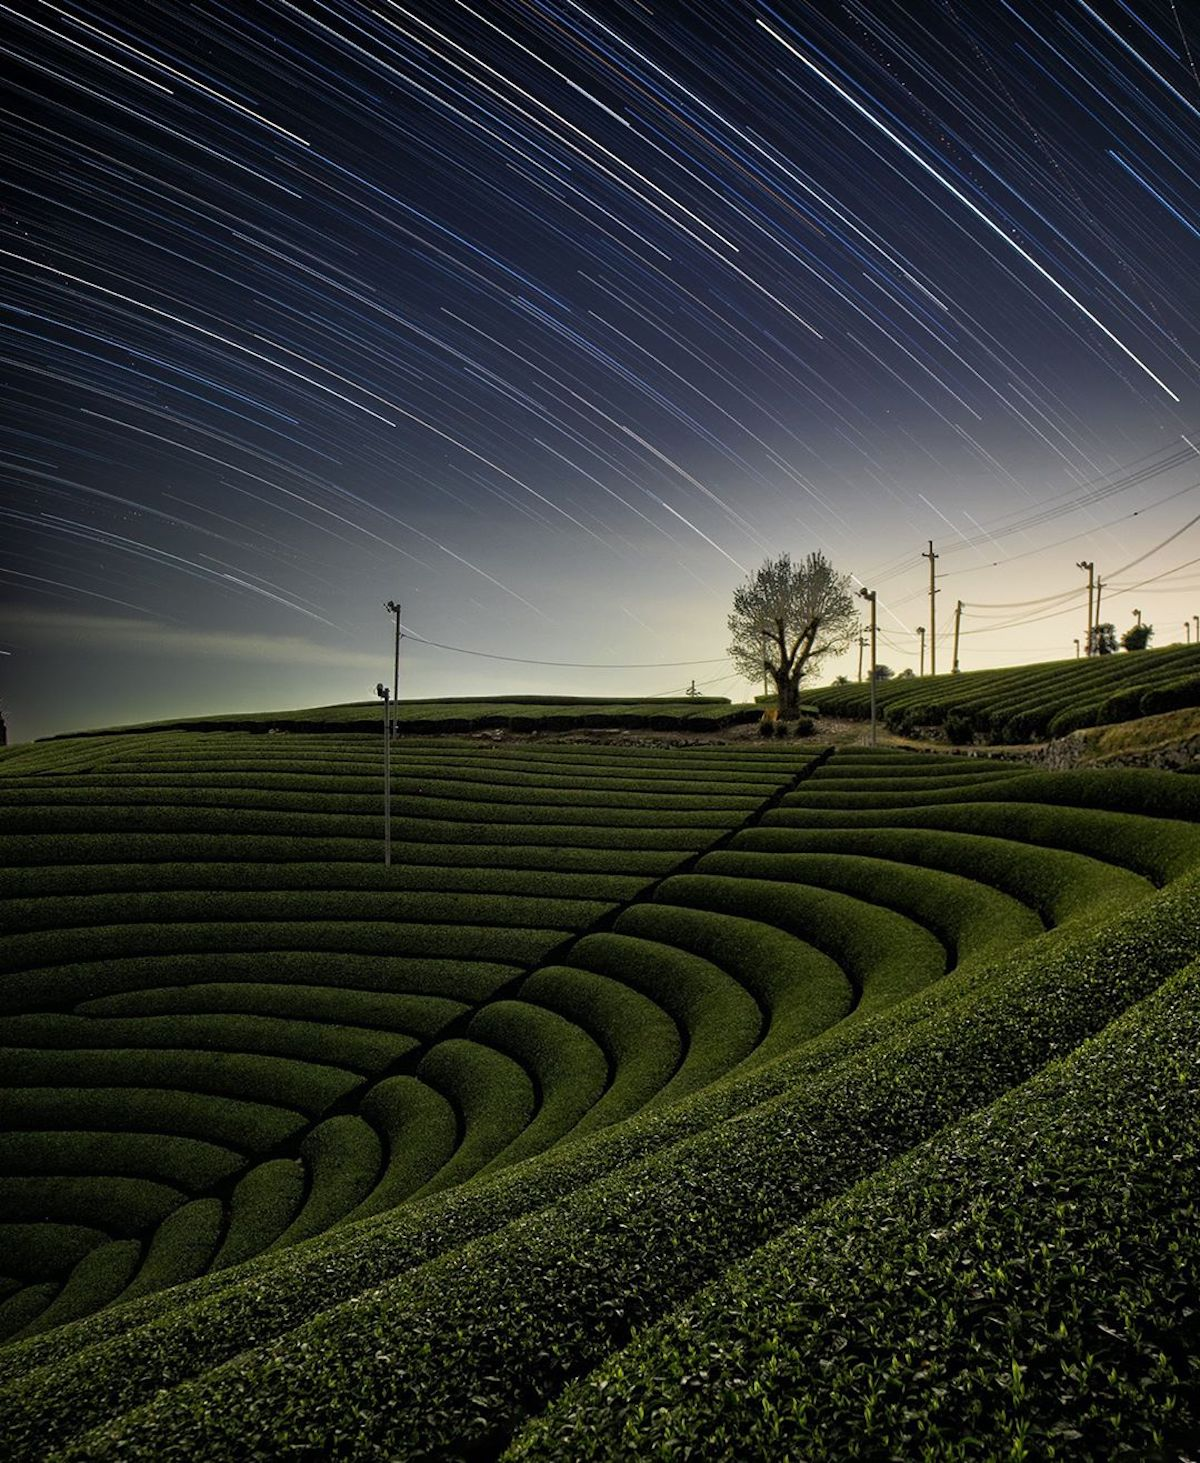 Long Exposure Nighttime Photography by Nori Yuasa